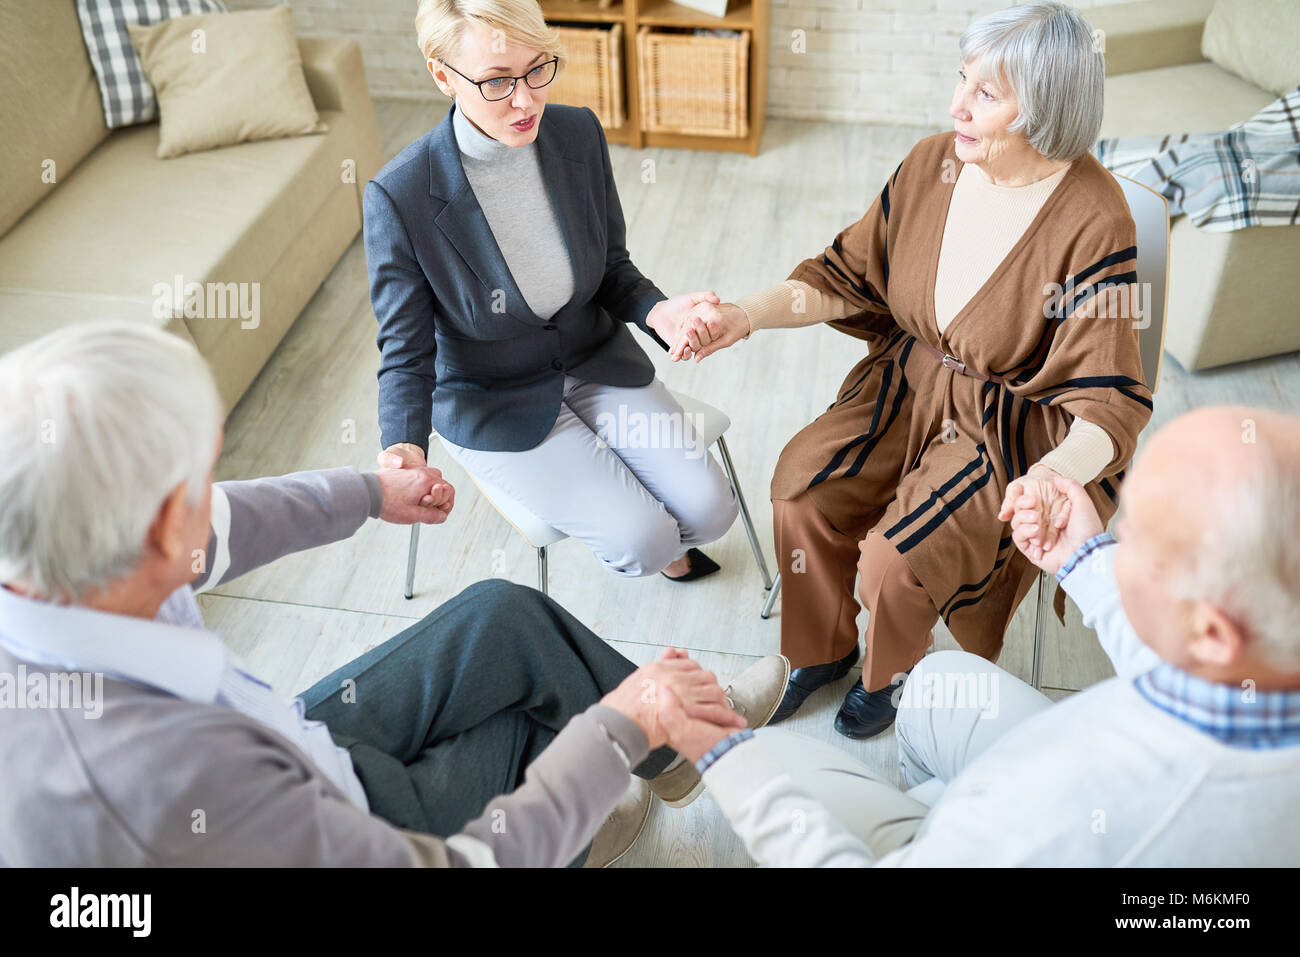 Support Circle in Group Therapy Session - Stock Image